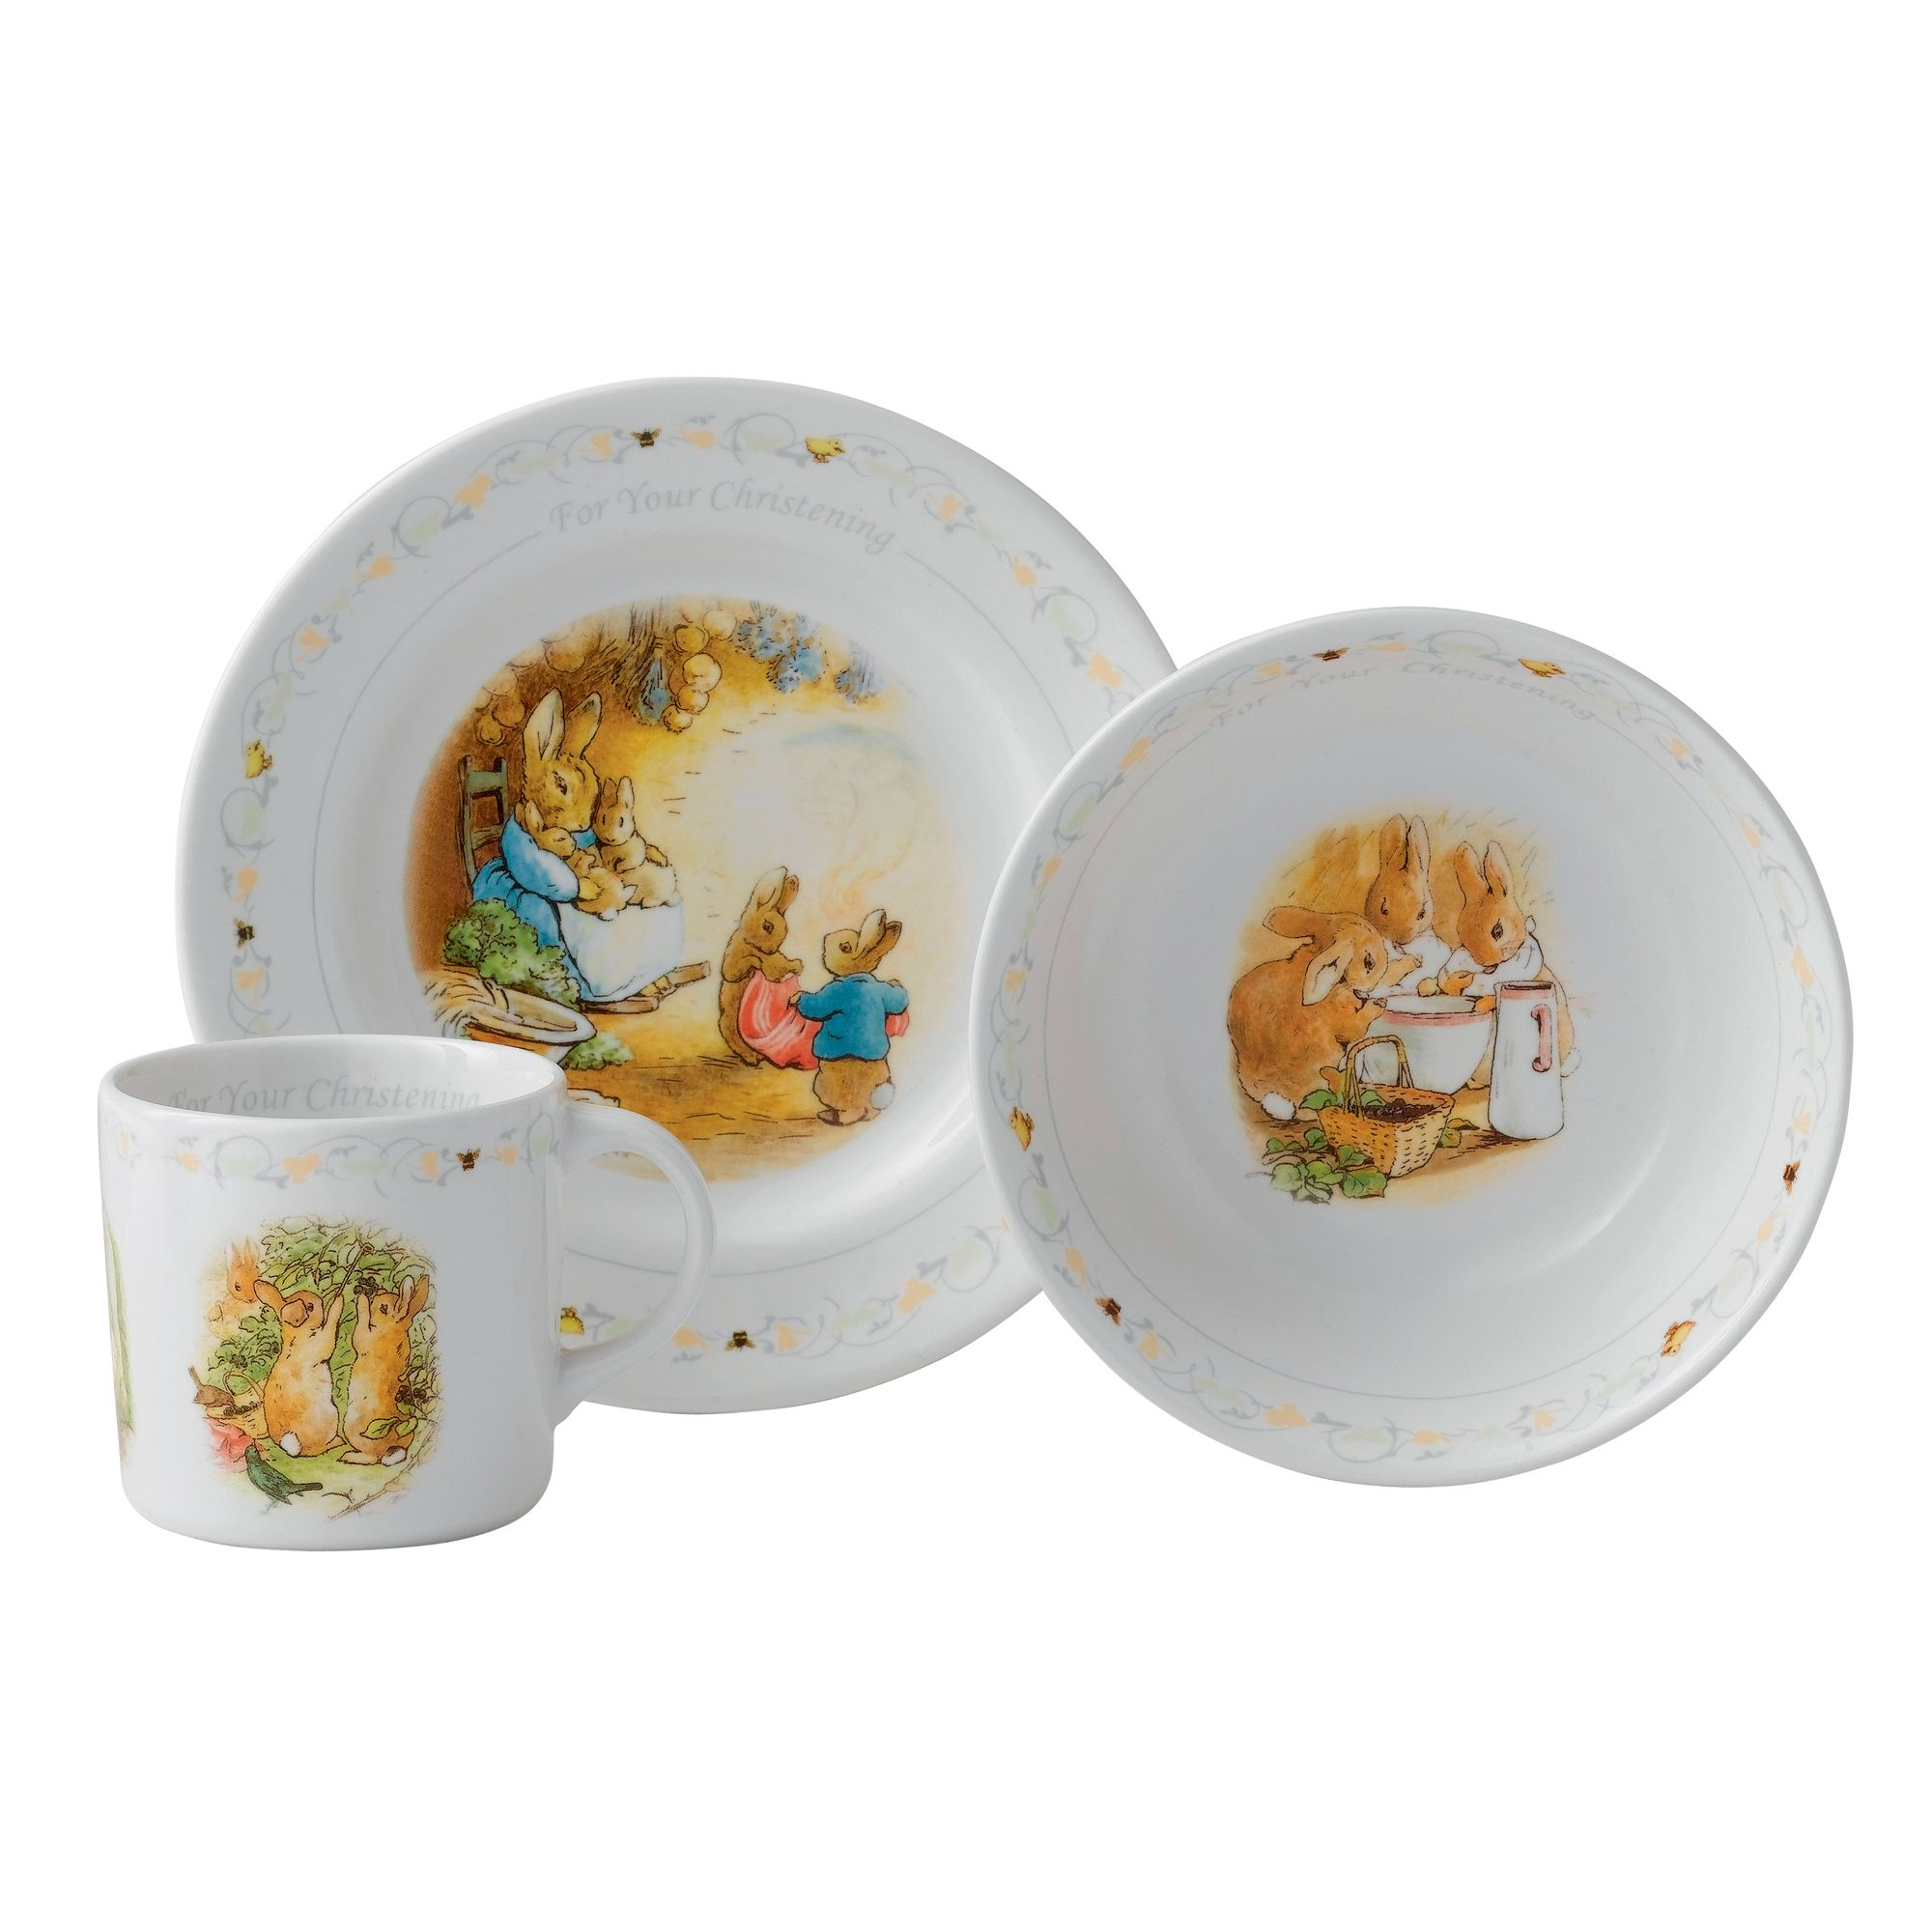 Peter Rabbit Christening 3-Piece Set